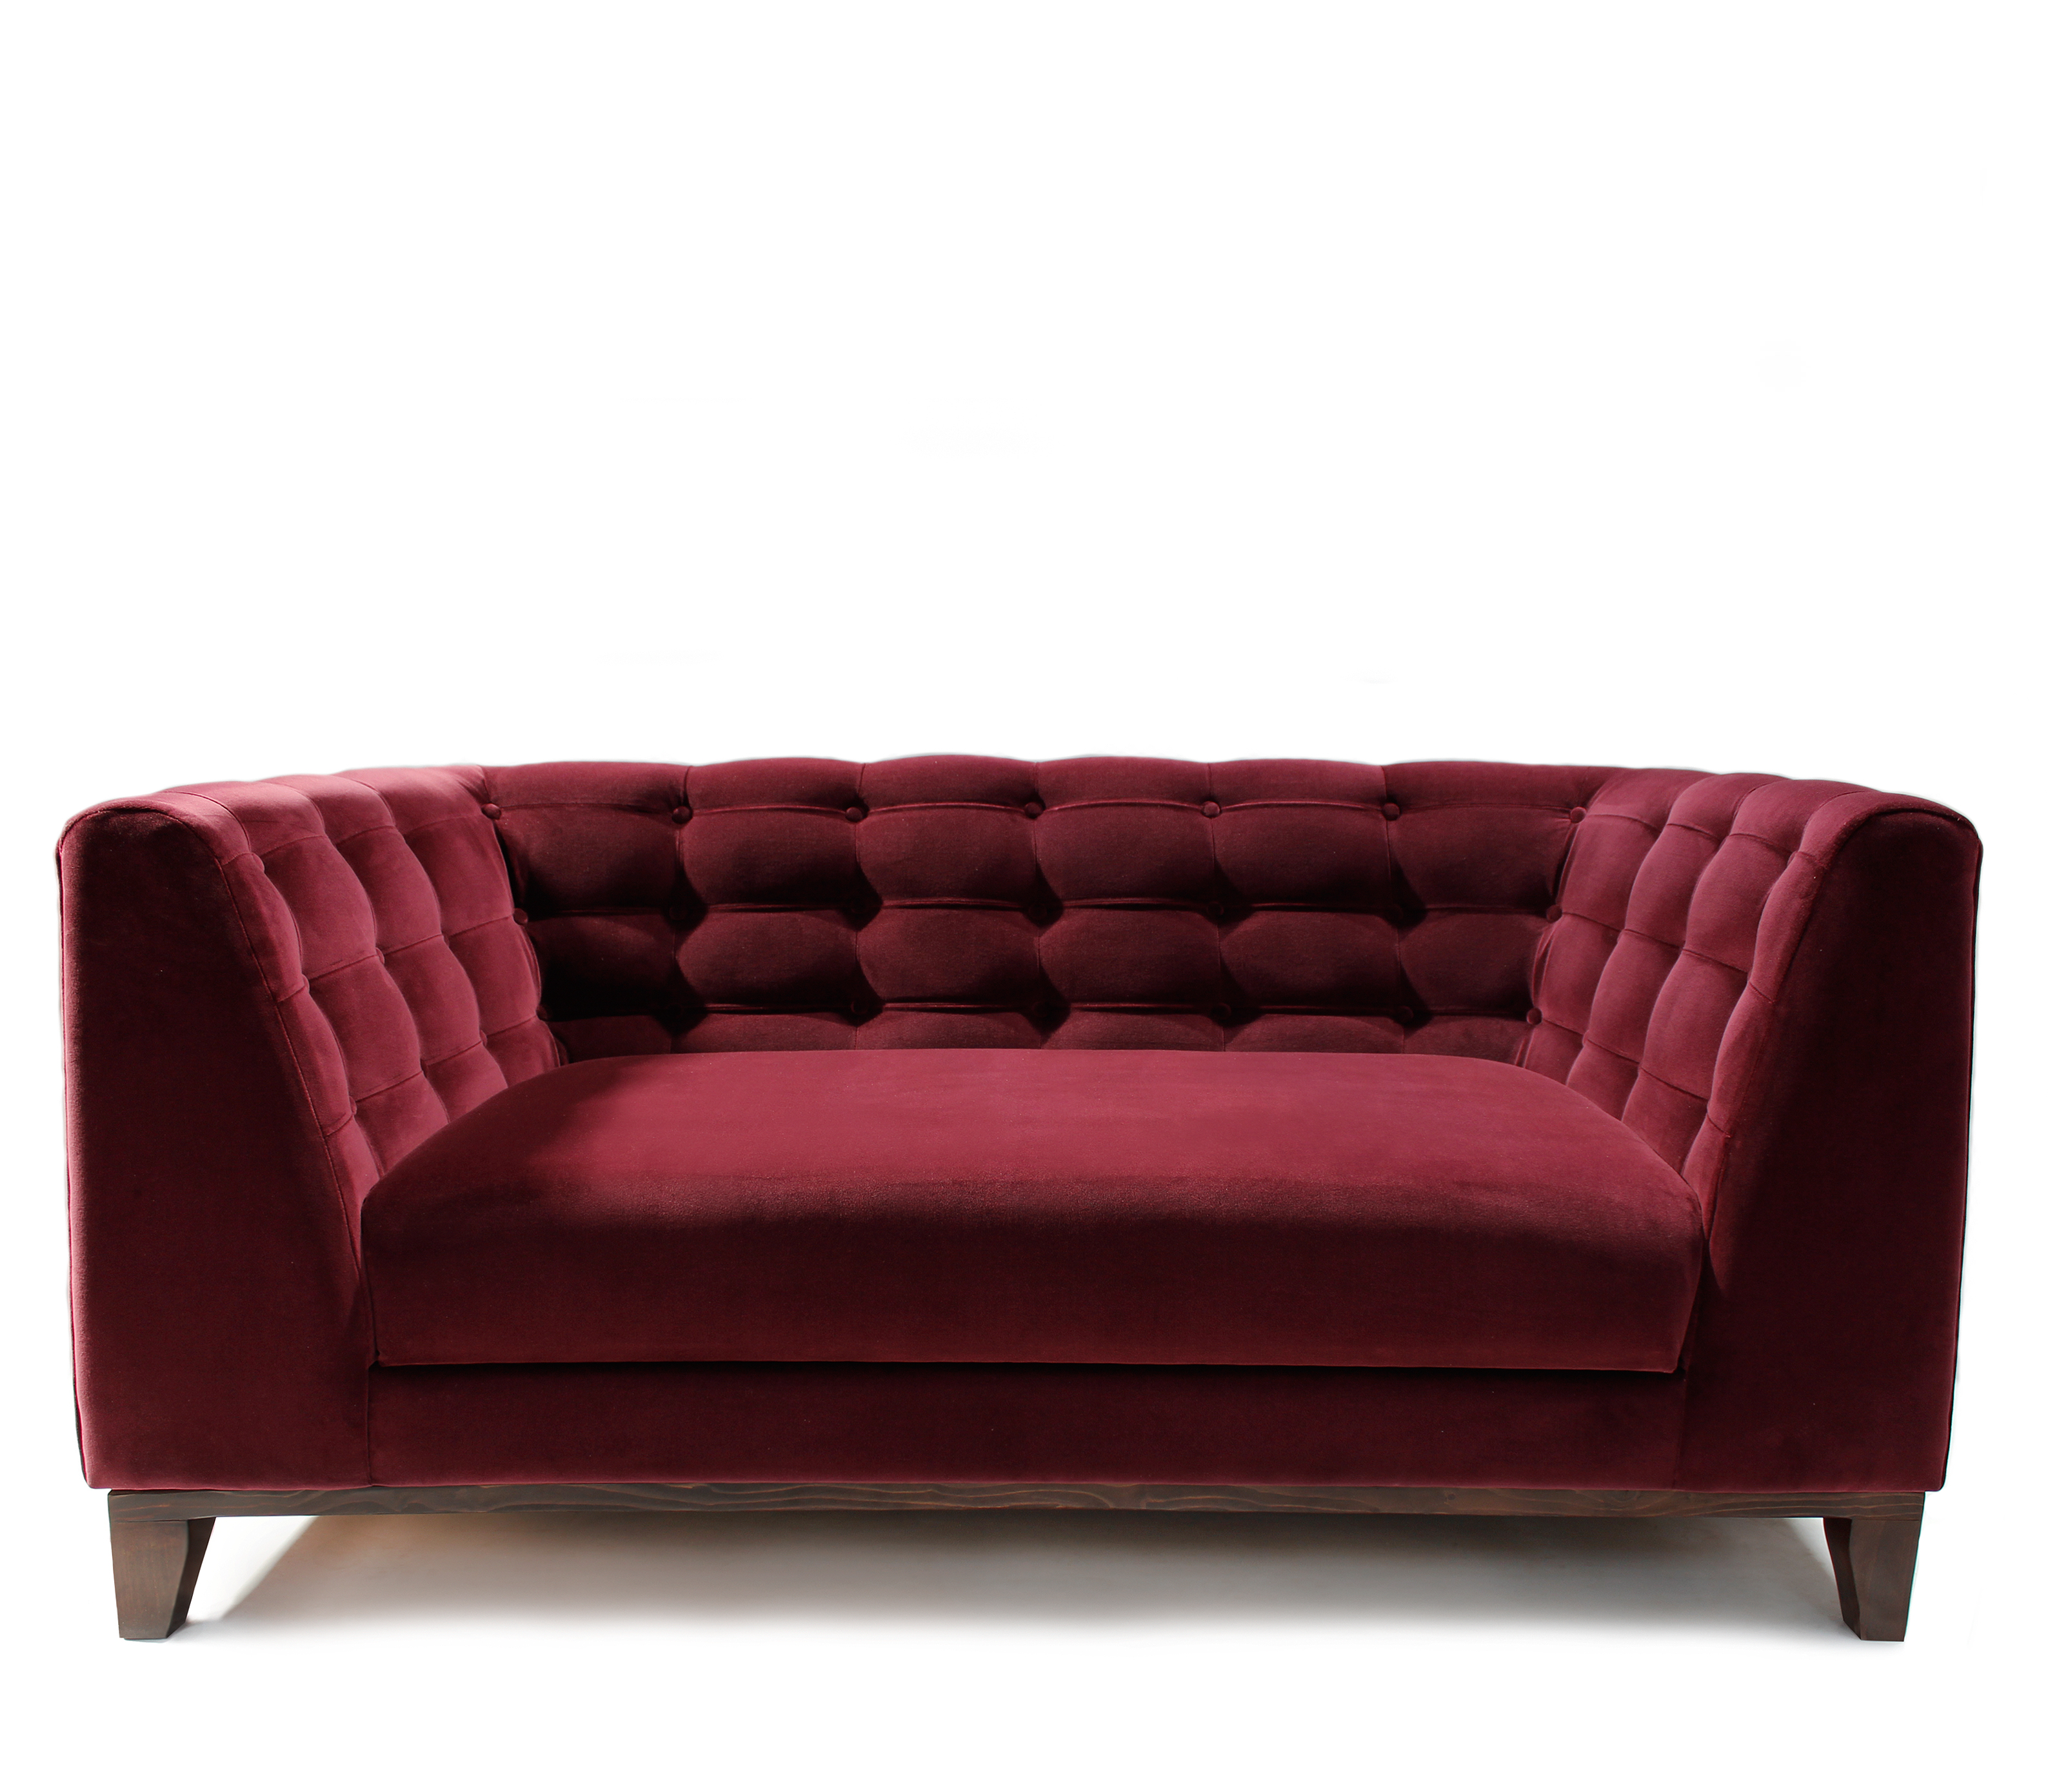 Torino sofa style matters for Chaise longue torino